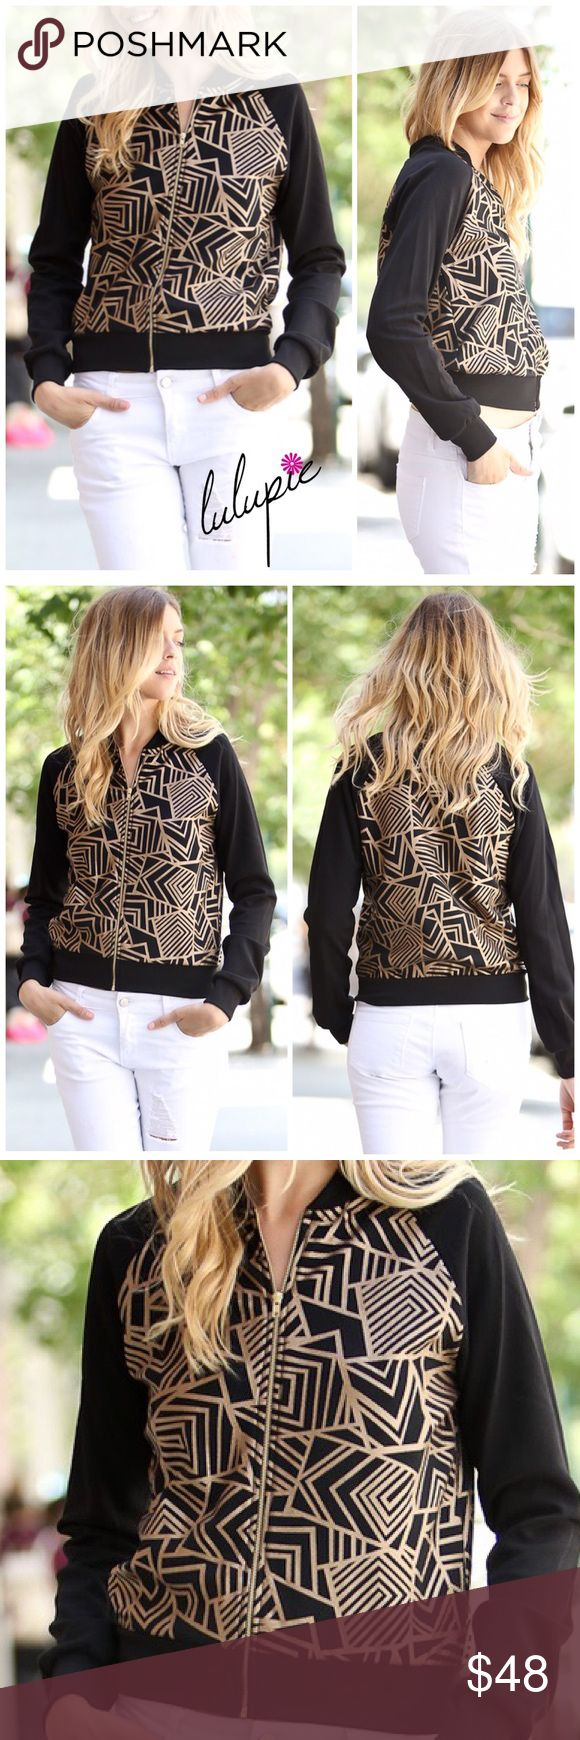 """✳️MOVING SALE✳️Black and Gold Bomber Jacket Kick off the fall/winter season in this unique stylish black bomber jacket featuring gold color abstract patterns. Made of 96/4 polyester-spandex material for that added stretch. Finished with a gold color zipper and a thick bottom hemline. MADE IN USA 🇺🇸  Measurements laying flat Small Bust 17""""/ length 21""""  Medium Bust 18.5""""/ length 21.5""""  Large Bust 20""""/ length 22""""  ✔️ Bundle Discounts  ✔️ Reasonable Offers through offer button  ❌ Low Balling…"""